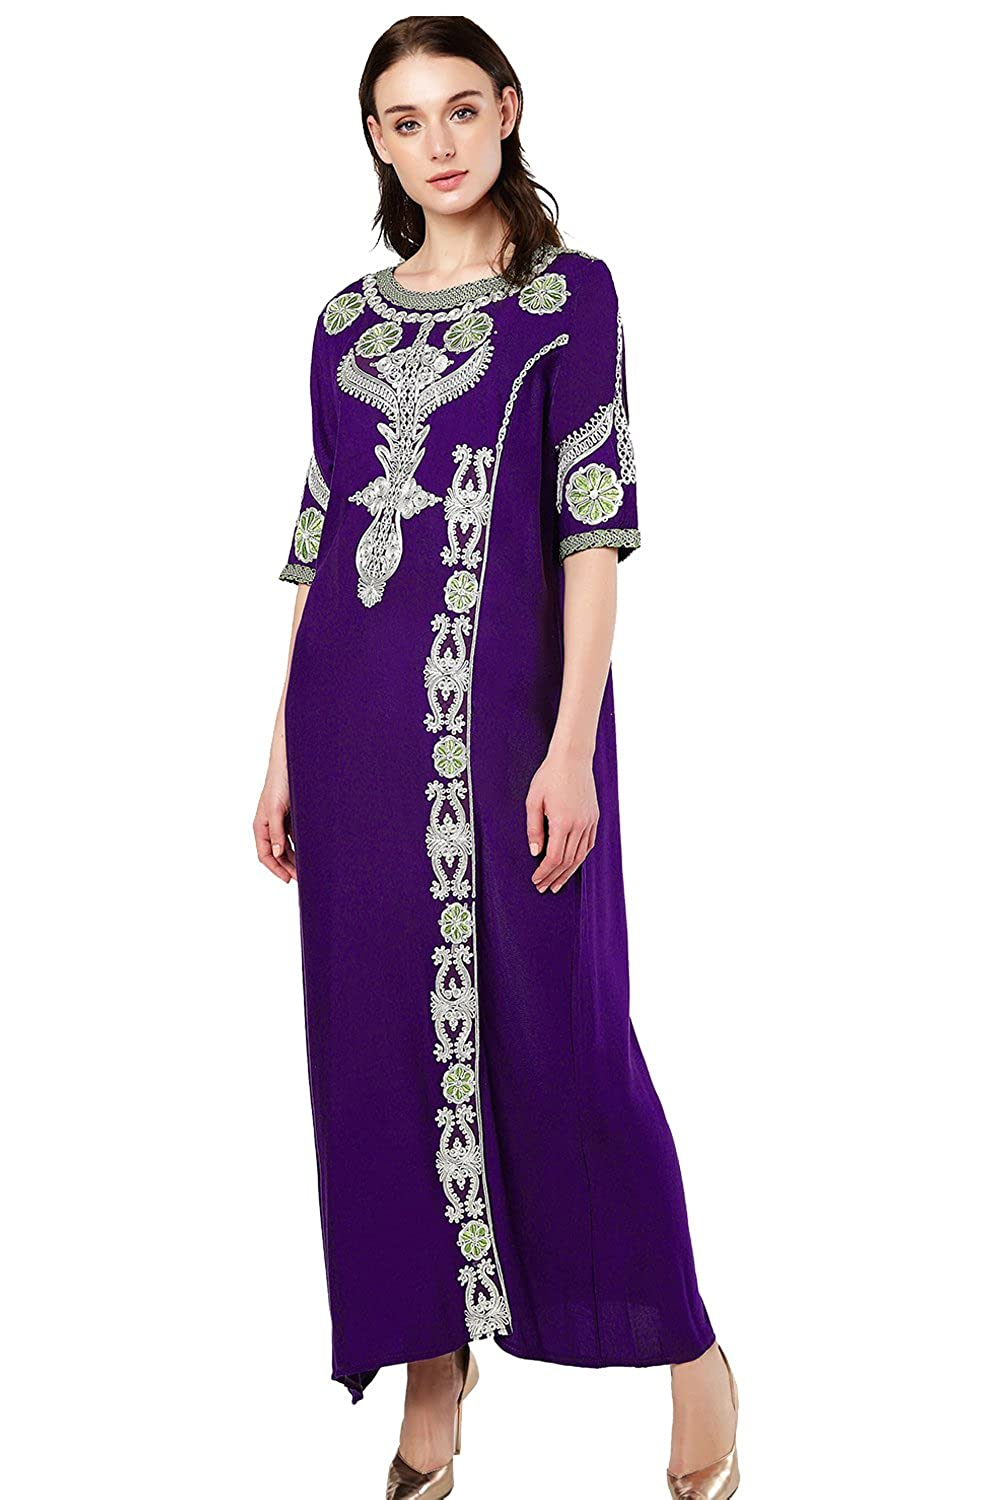 Islamic Clothing Embroidery Women Jalabiya Muslim Abaya Long Dubai Dress LF-14